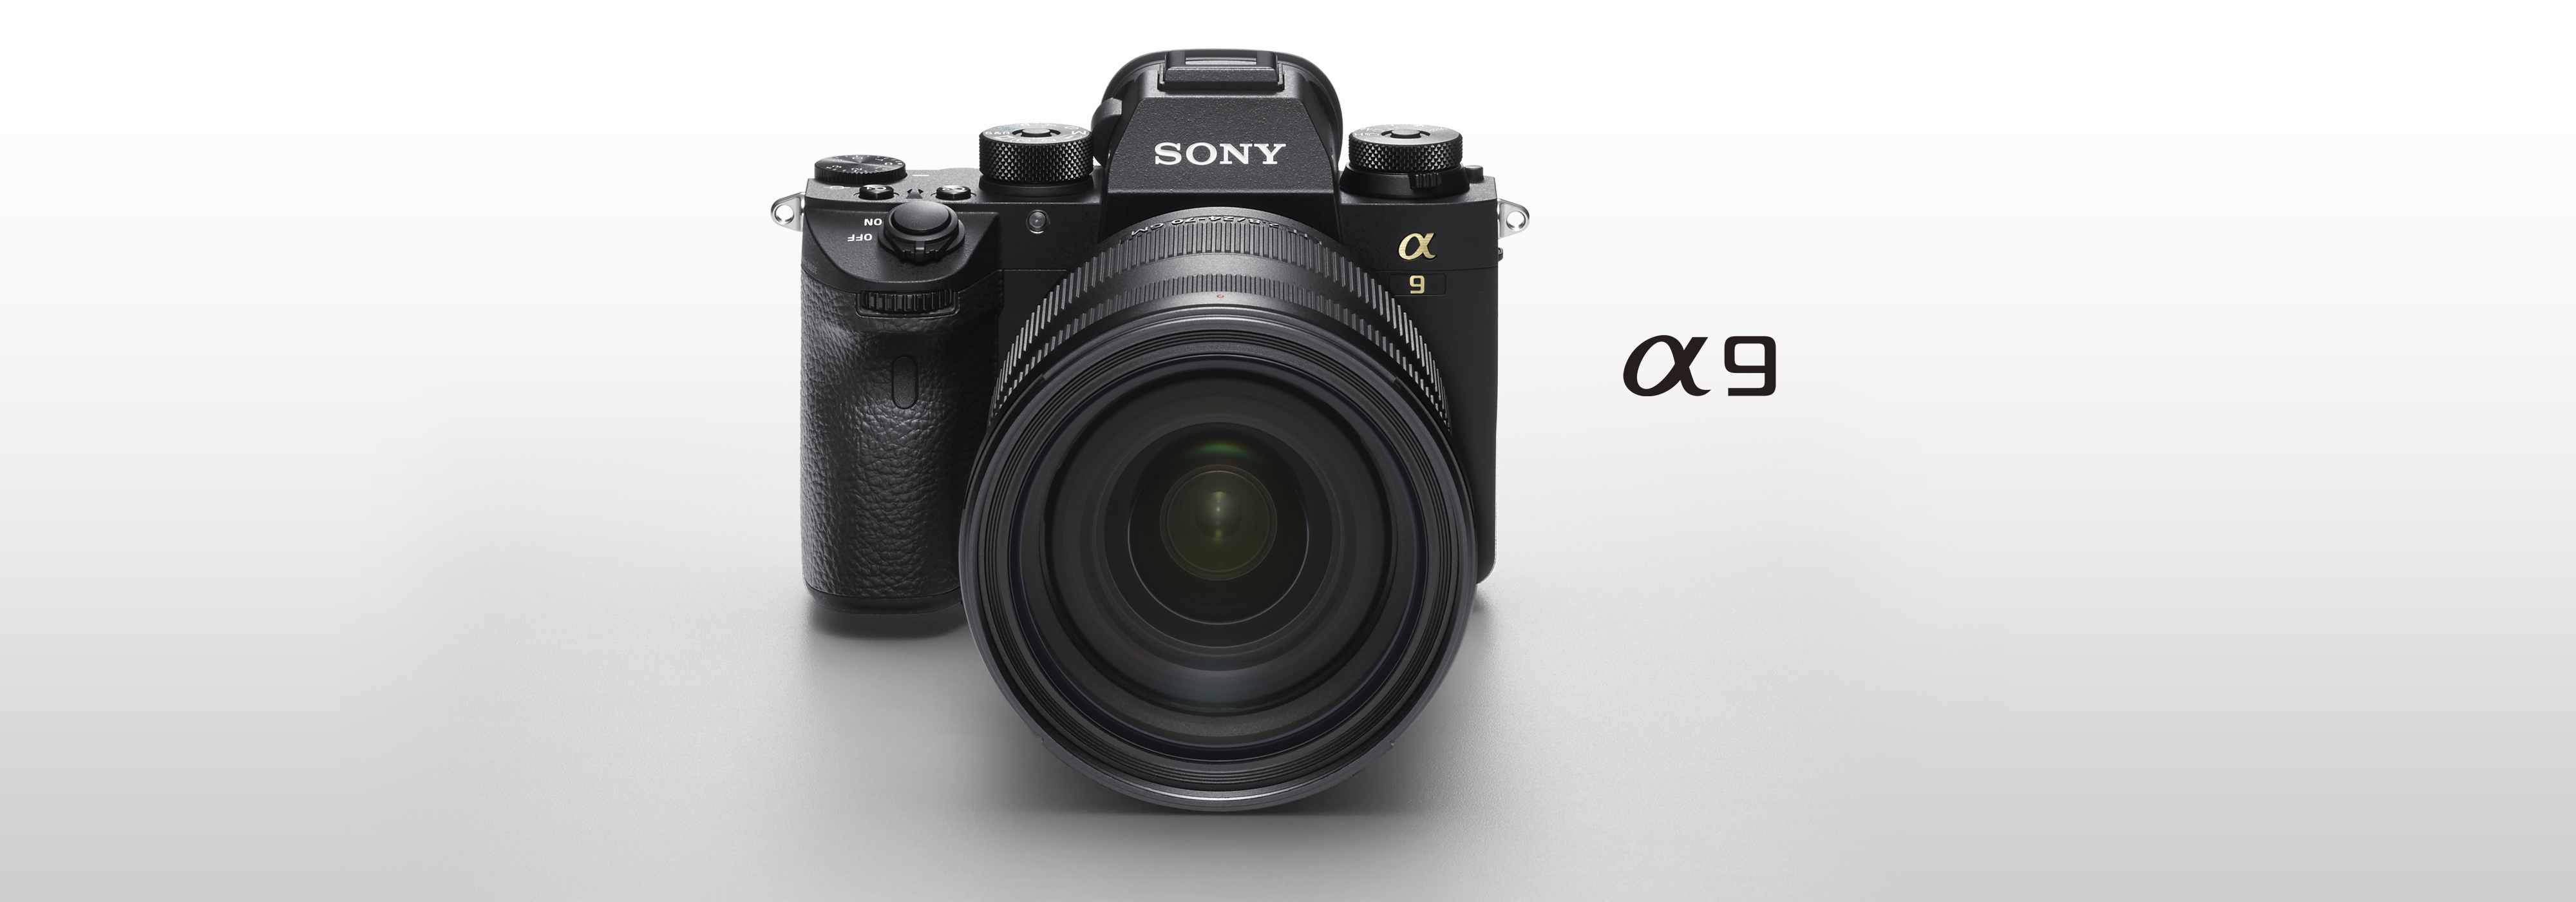 Sony A9 Is A 4k Mirrorless Full Frame Camera With Touchscreen